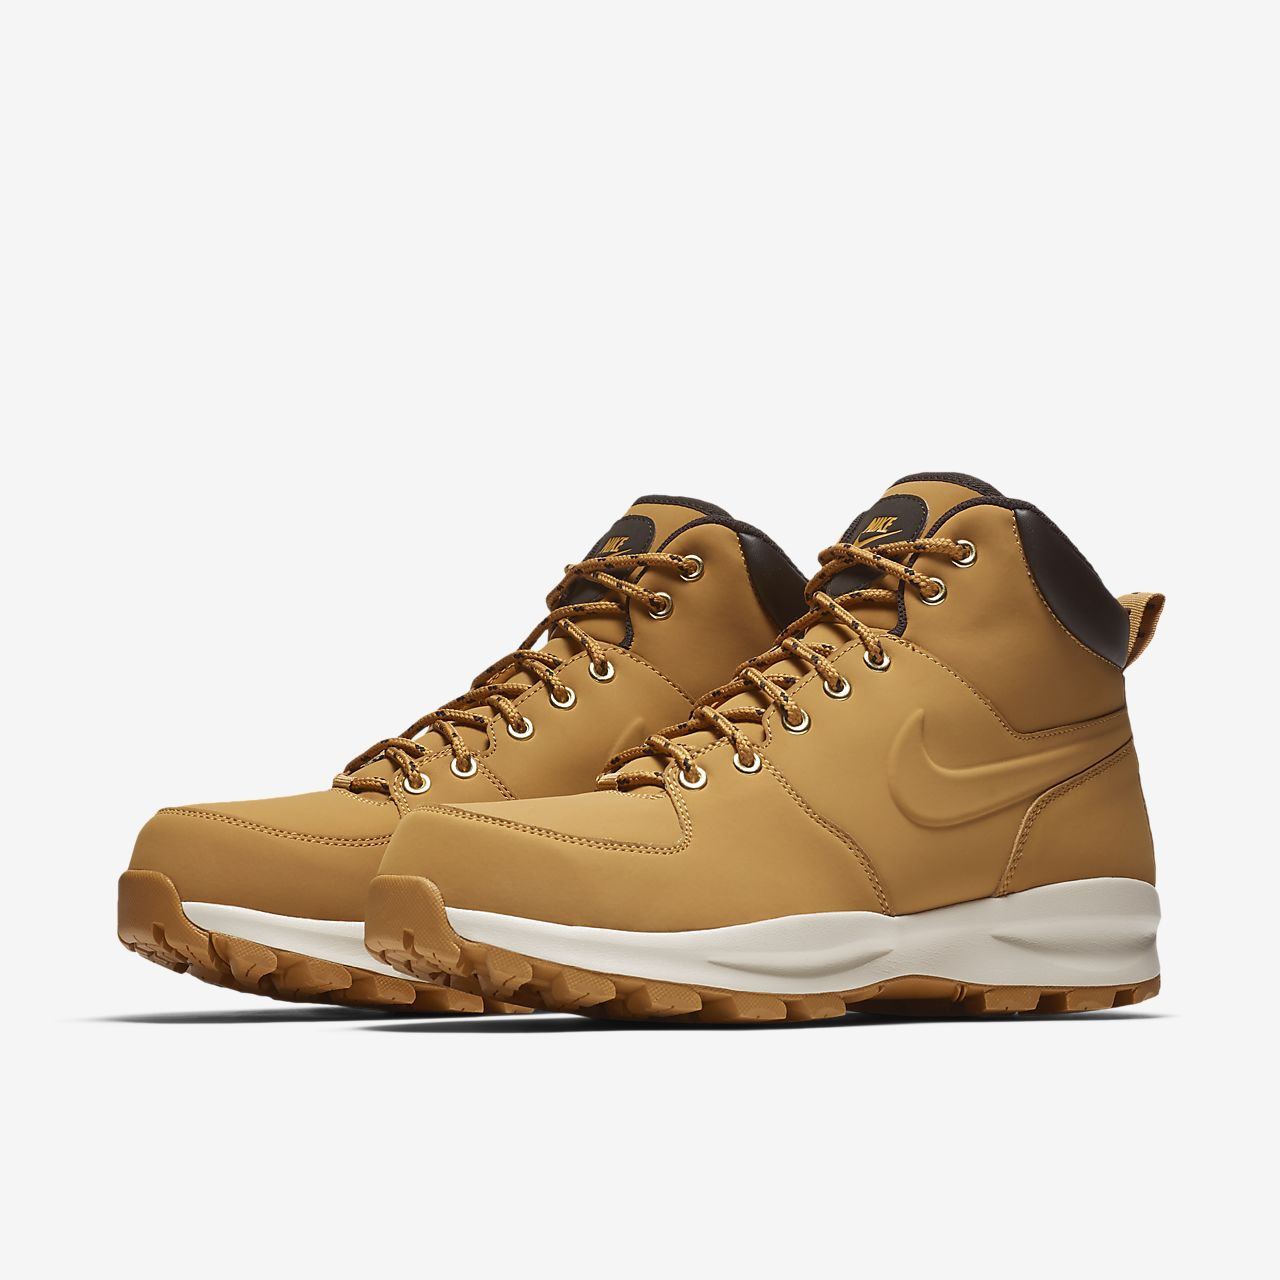 a9ab6d21abe9c8 Nike Manoa Men s Boot. Nike.com BE